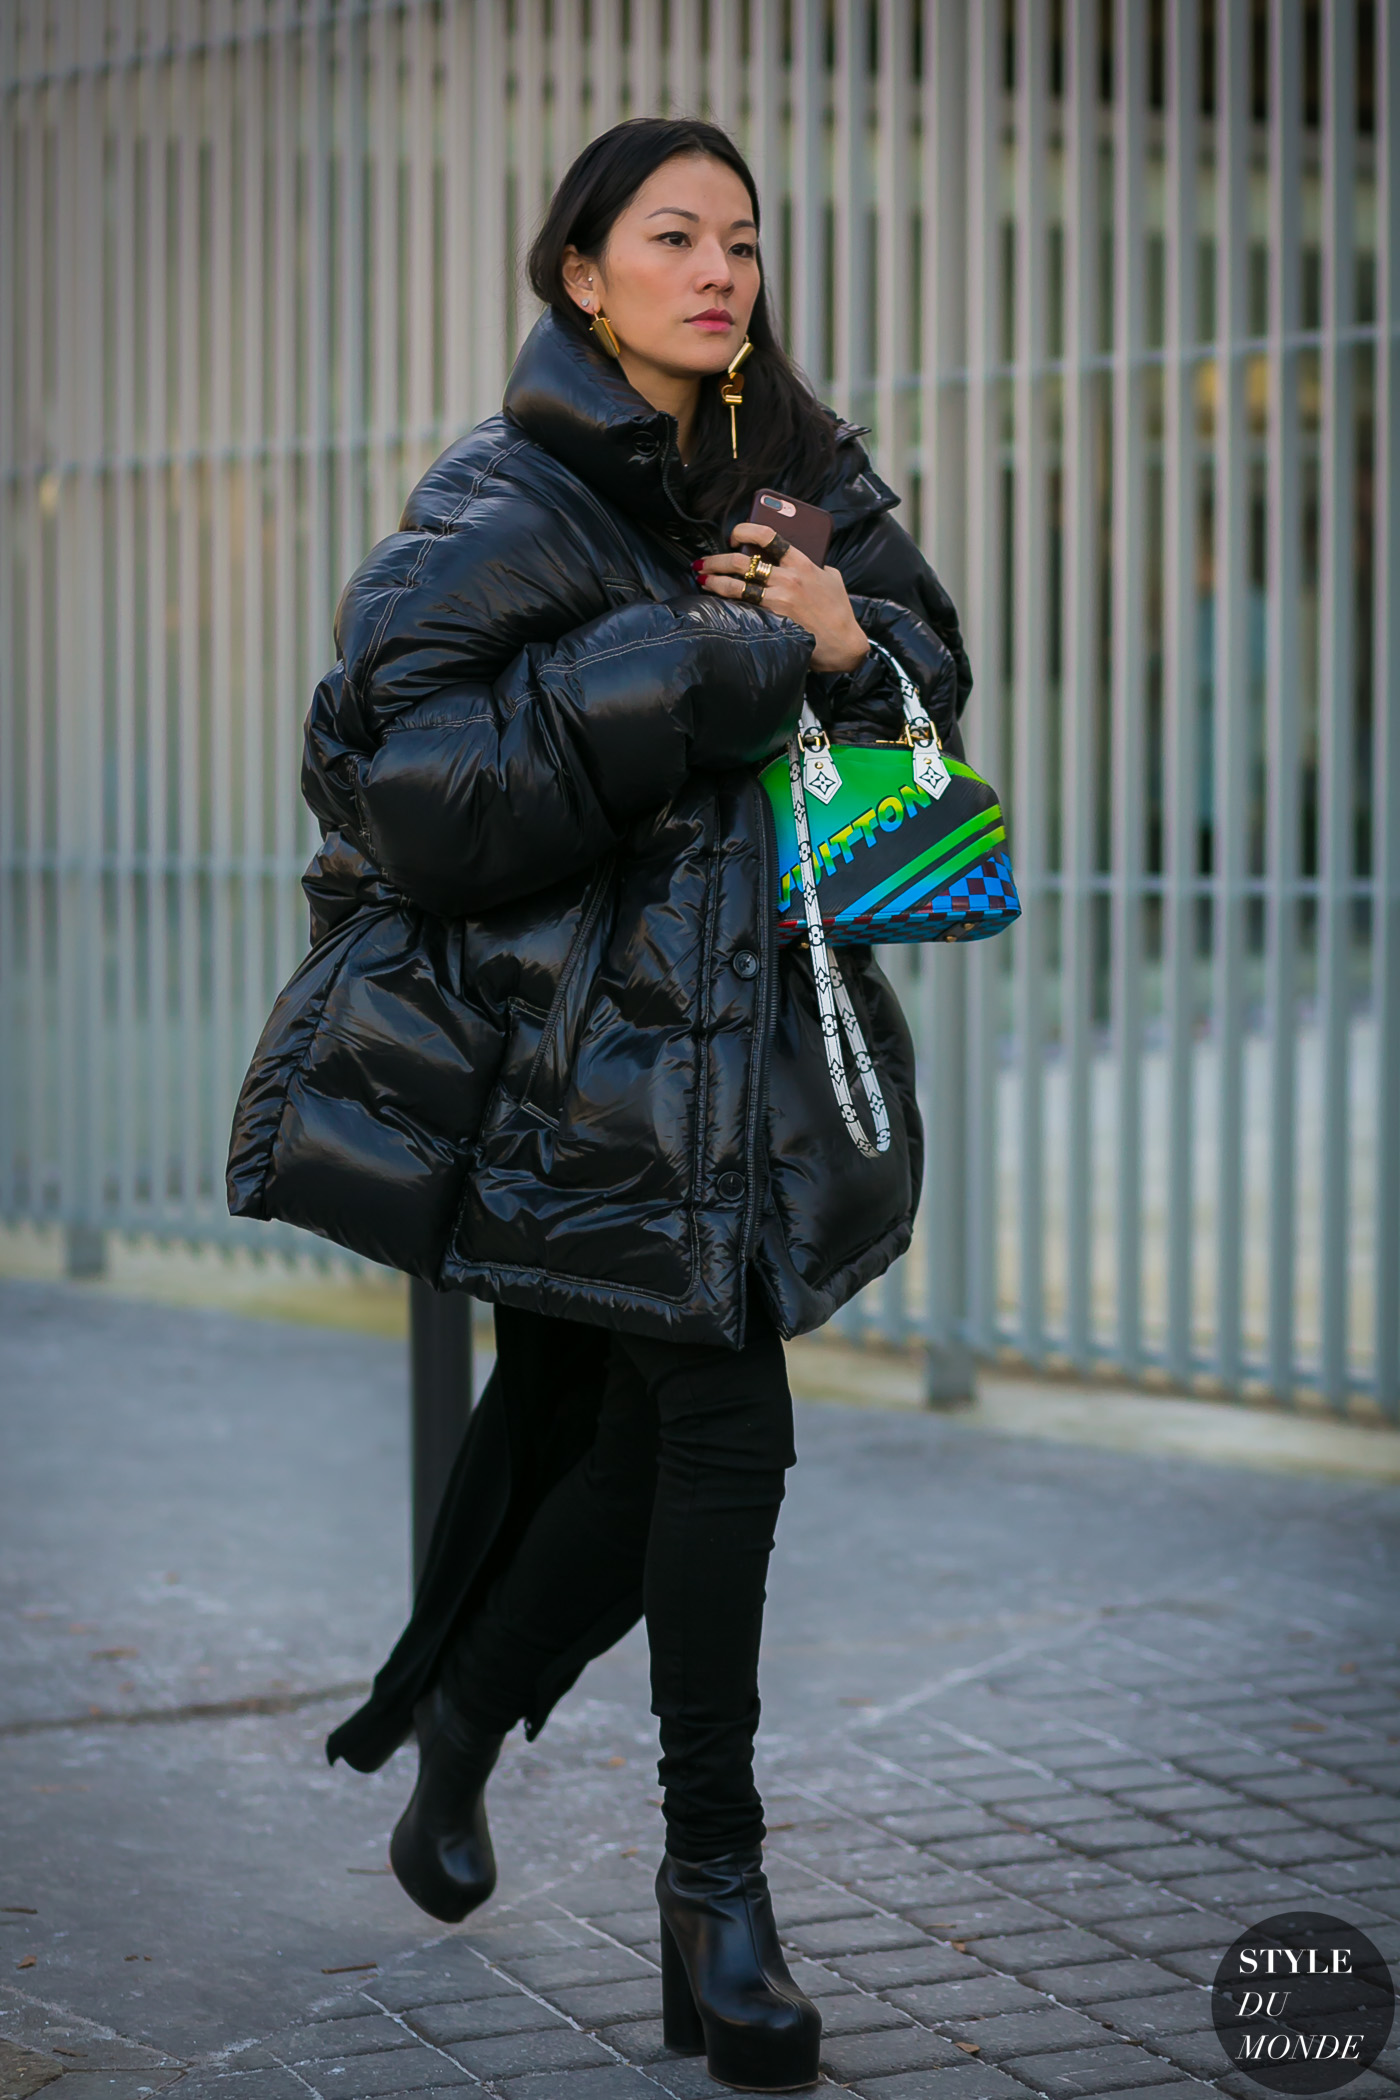 Tina-Leung-by-STYLEDUMONDE-Street-Style-Fashion-Photography0E2A8048-700x1050@2x